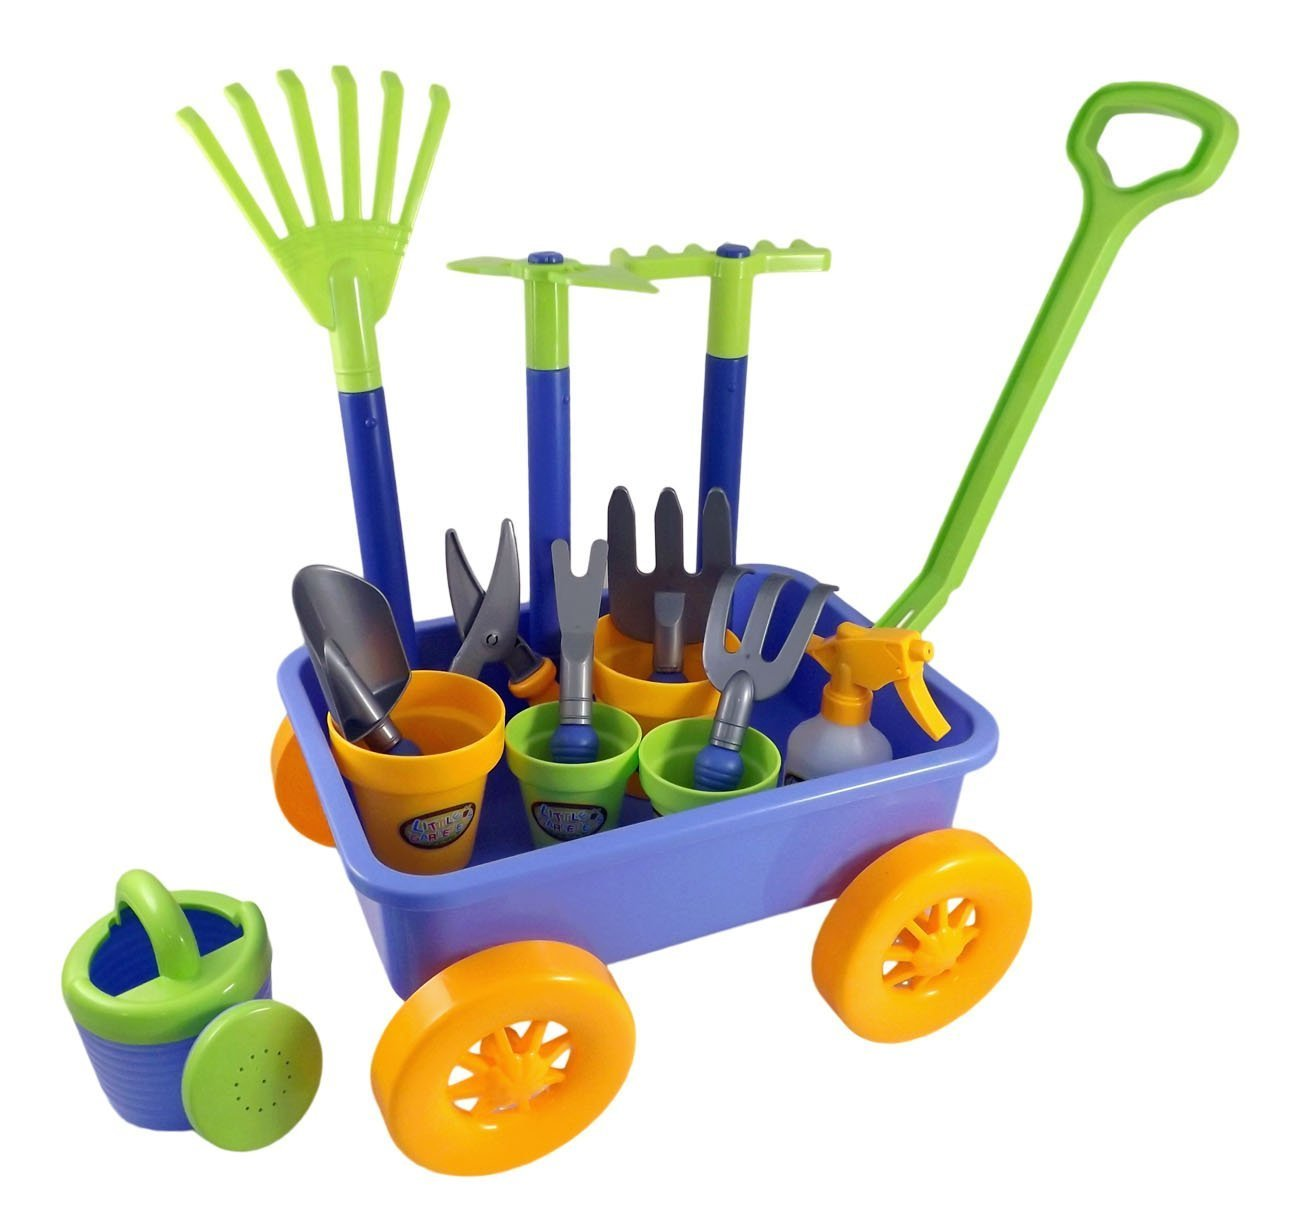 AMPERSAND SHOPS Kids Garden Wagon & Tools Play Set by AMPERSAND SHOPS